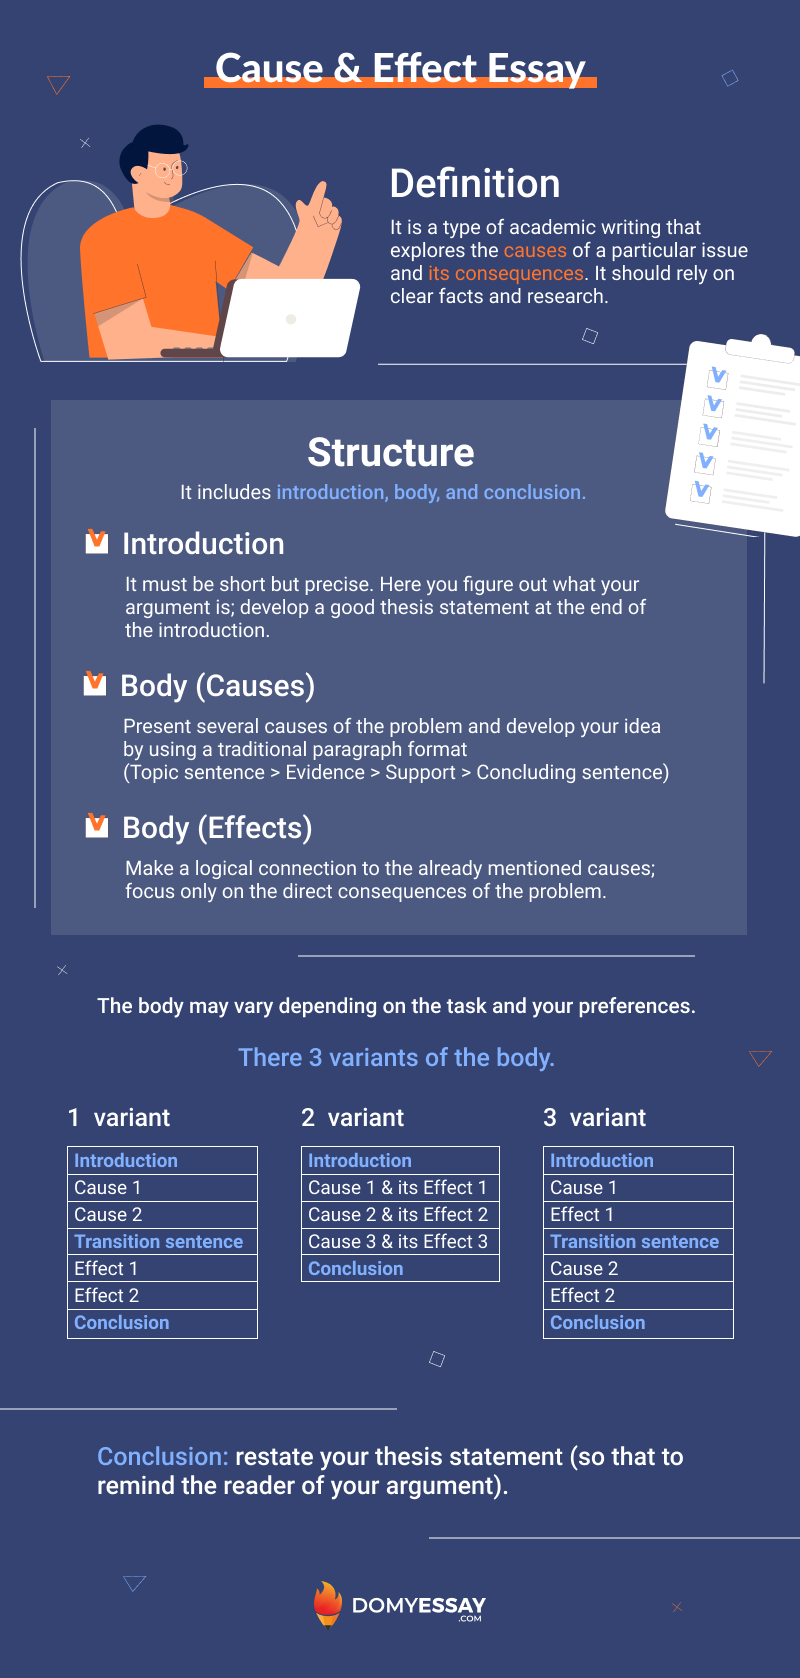 Cause and Effect Essay Infographic